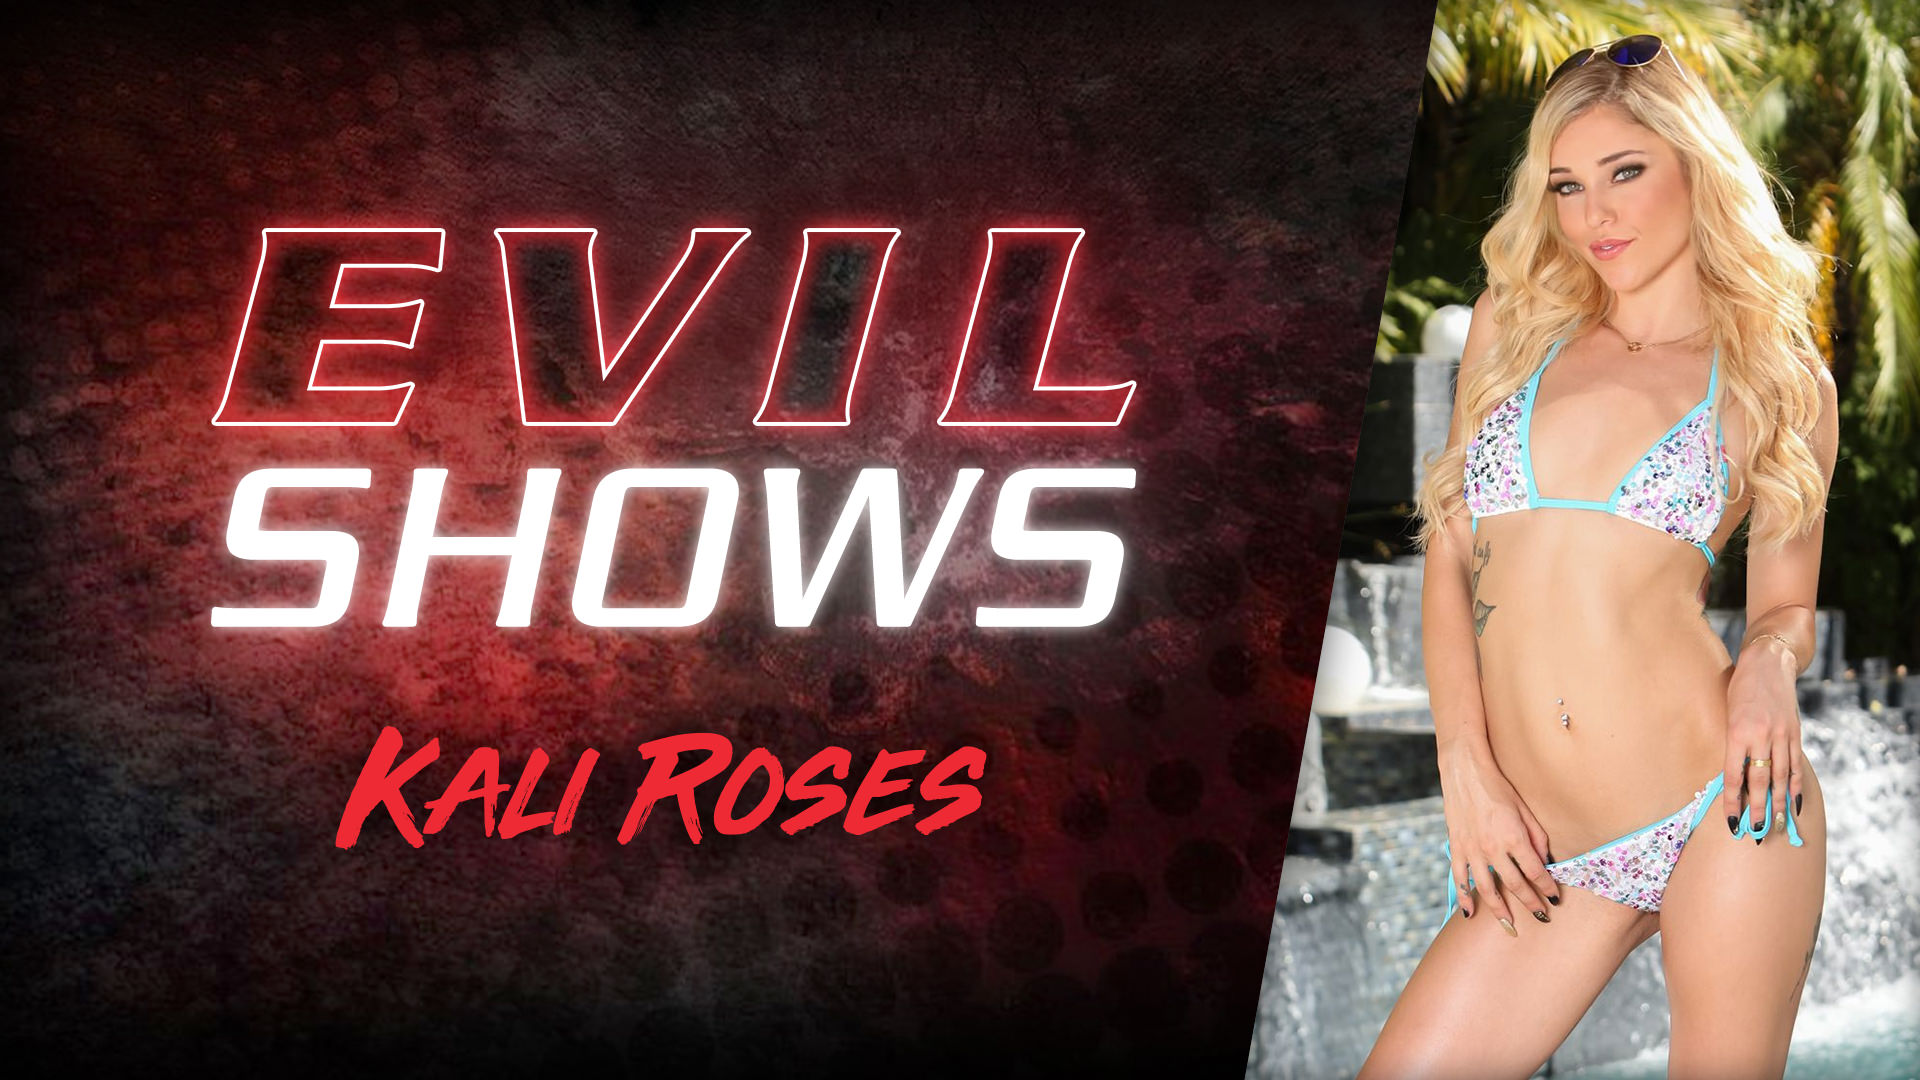 Evil Shows - Kali Roses Escena 1